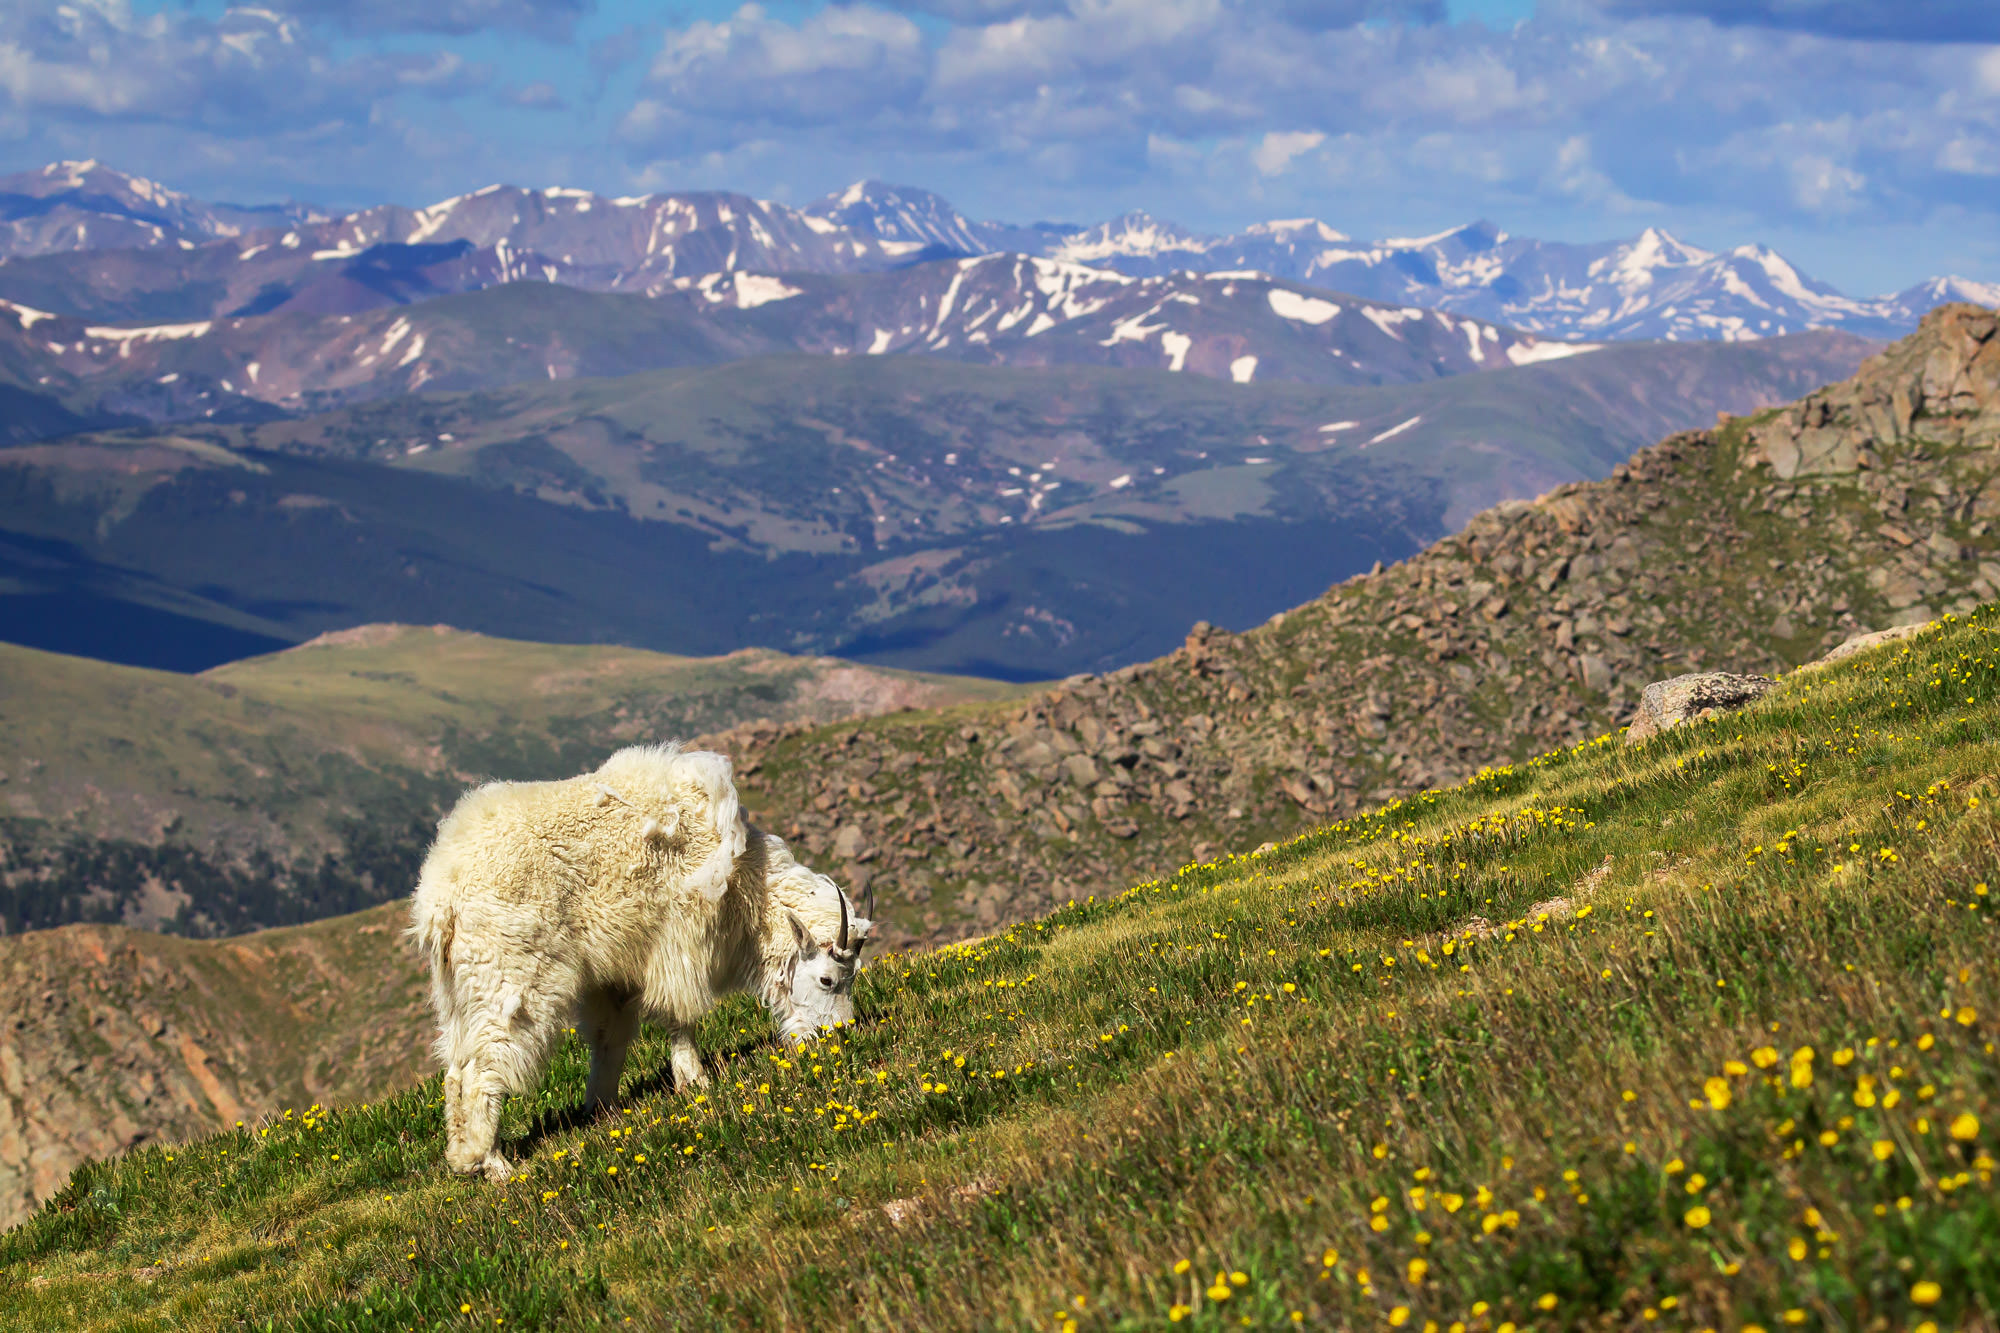 Goat, Mountain Goat, Colorado, Mount Evans, limited edition, photograph, fine art, wildlife, photo